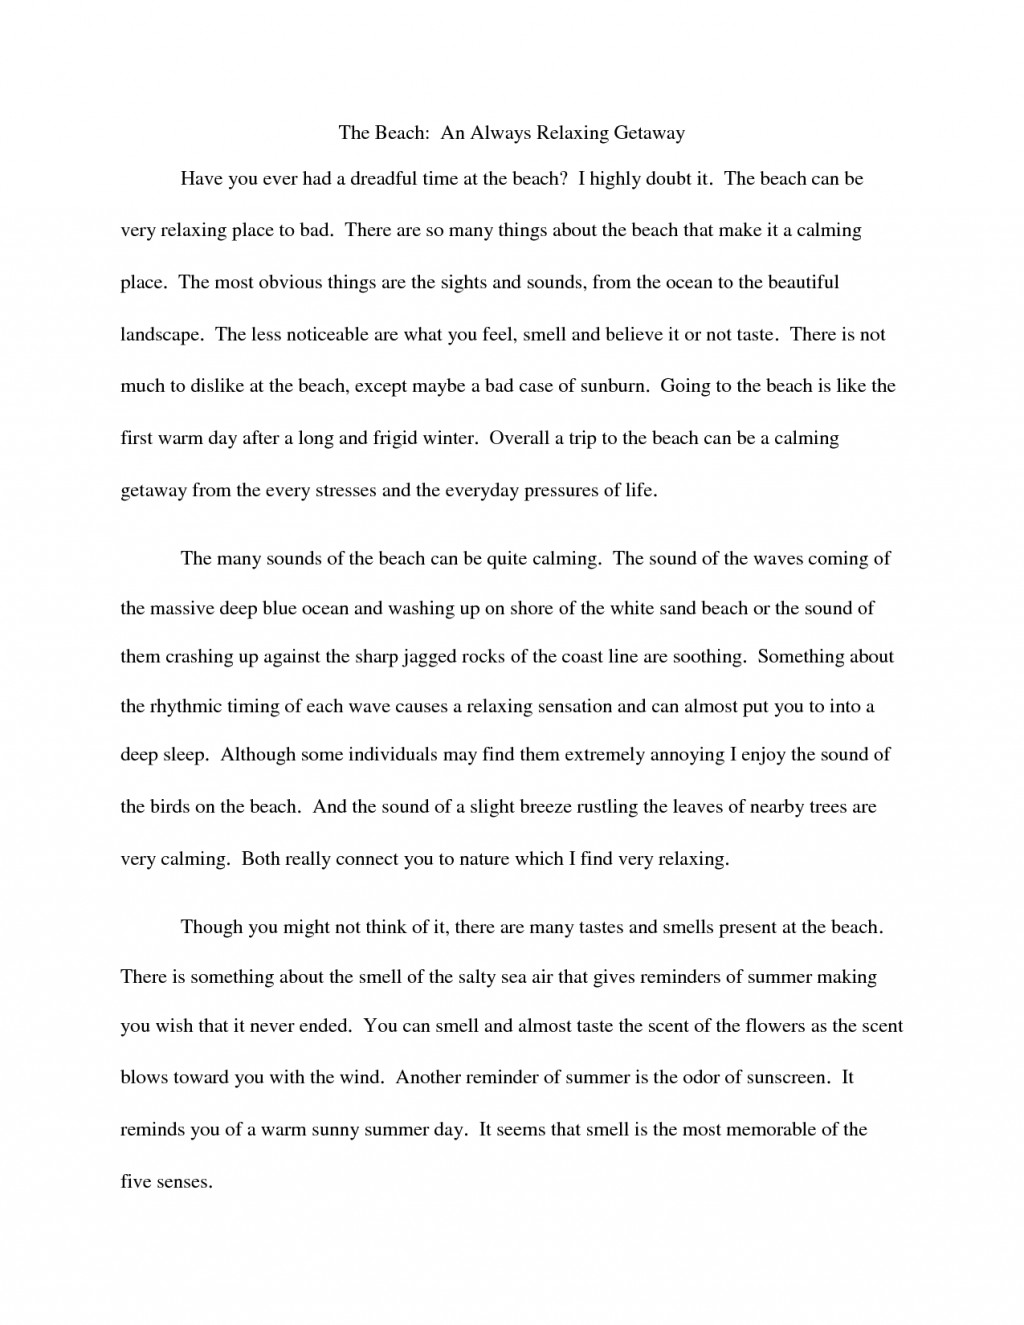 006 Essay Example Descriptive Beach Essays College That Stand Out Odvqltnc Short On The Sunset Paper Barefoot About Walk Vacation Narrative At Night Free Unbelievable Examples For Grade 7 Love Pdf Large